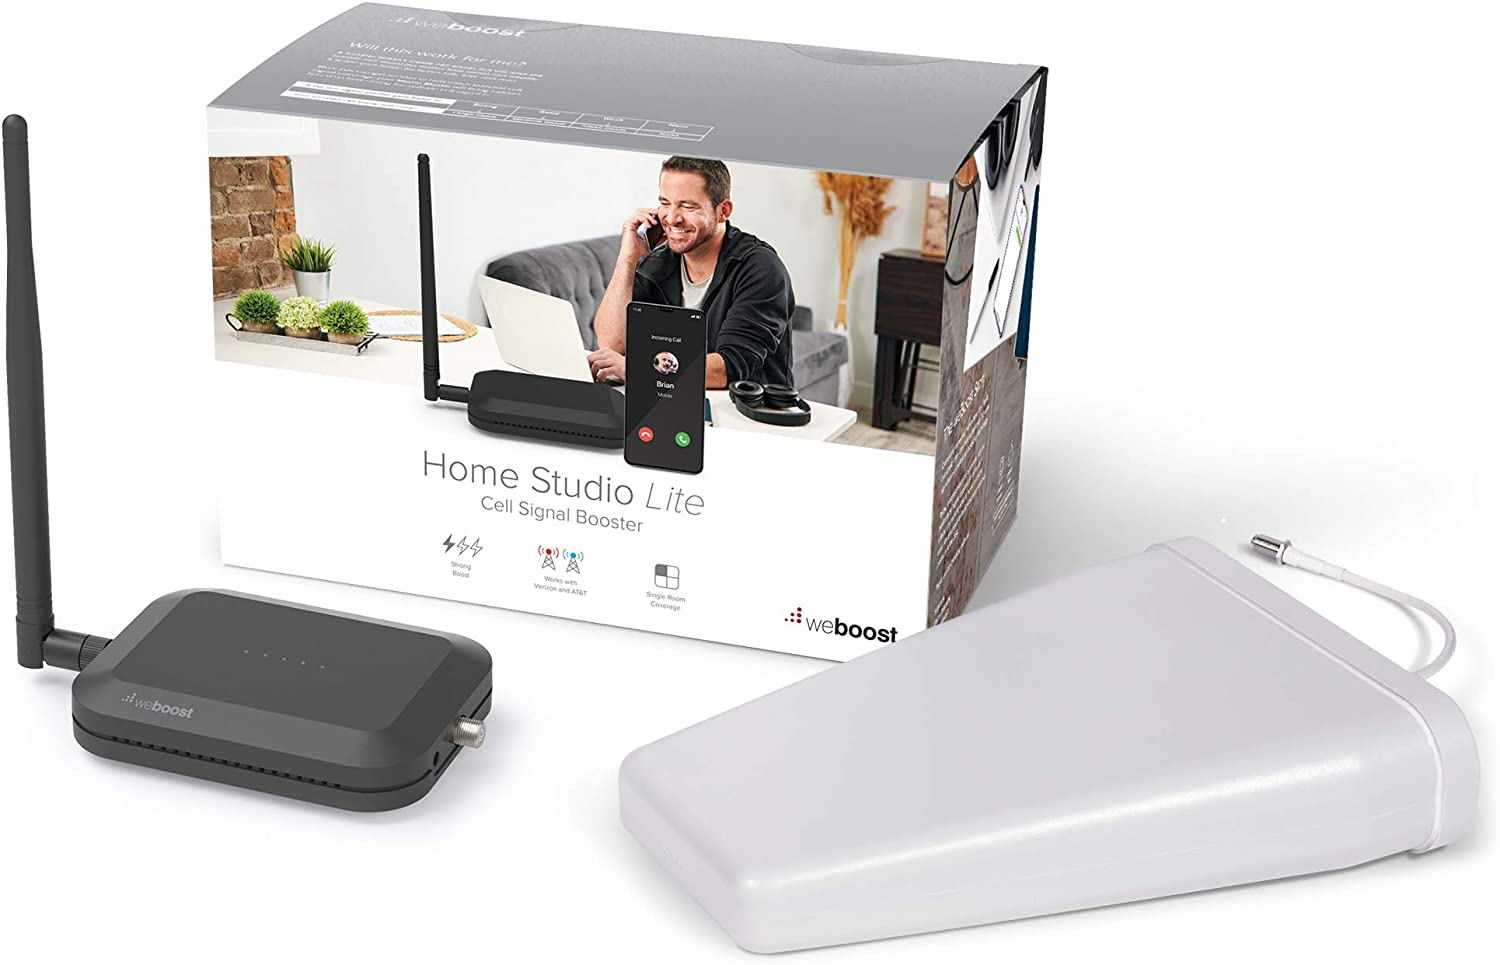 weBoost Home Studio Lite (470165) Cell Signal Booster Kit | Room or Apartment | Verizon and AT&T Only | FCC Approved